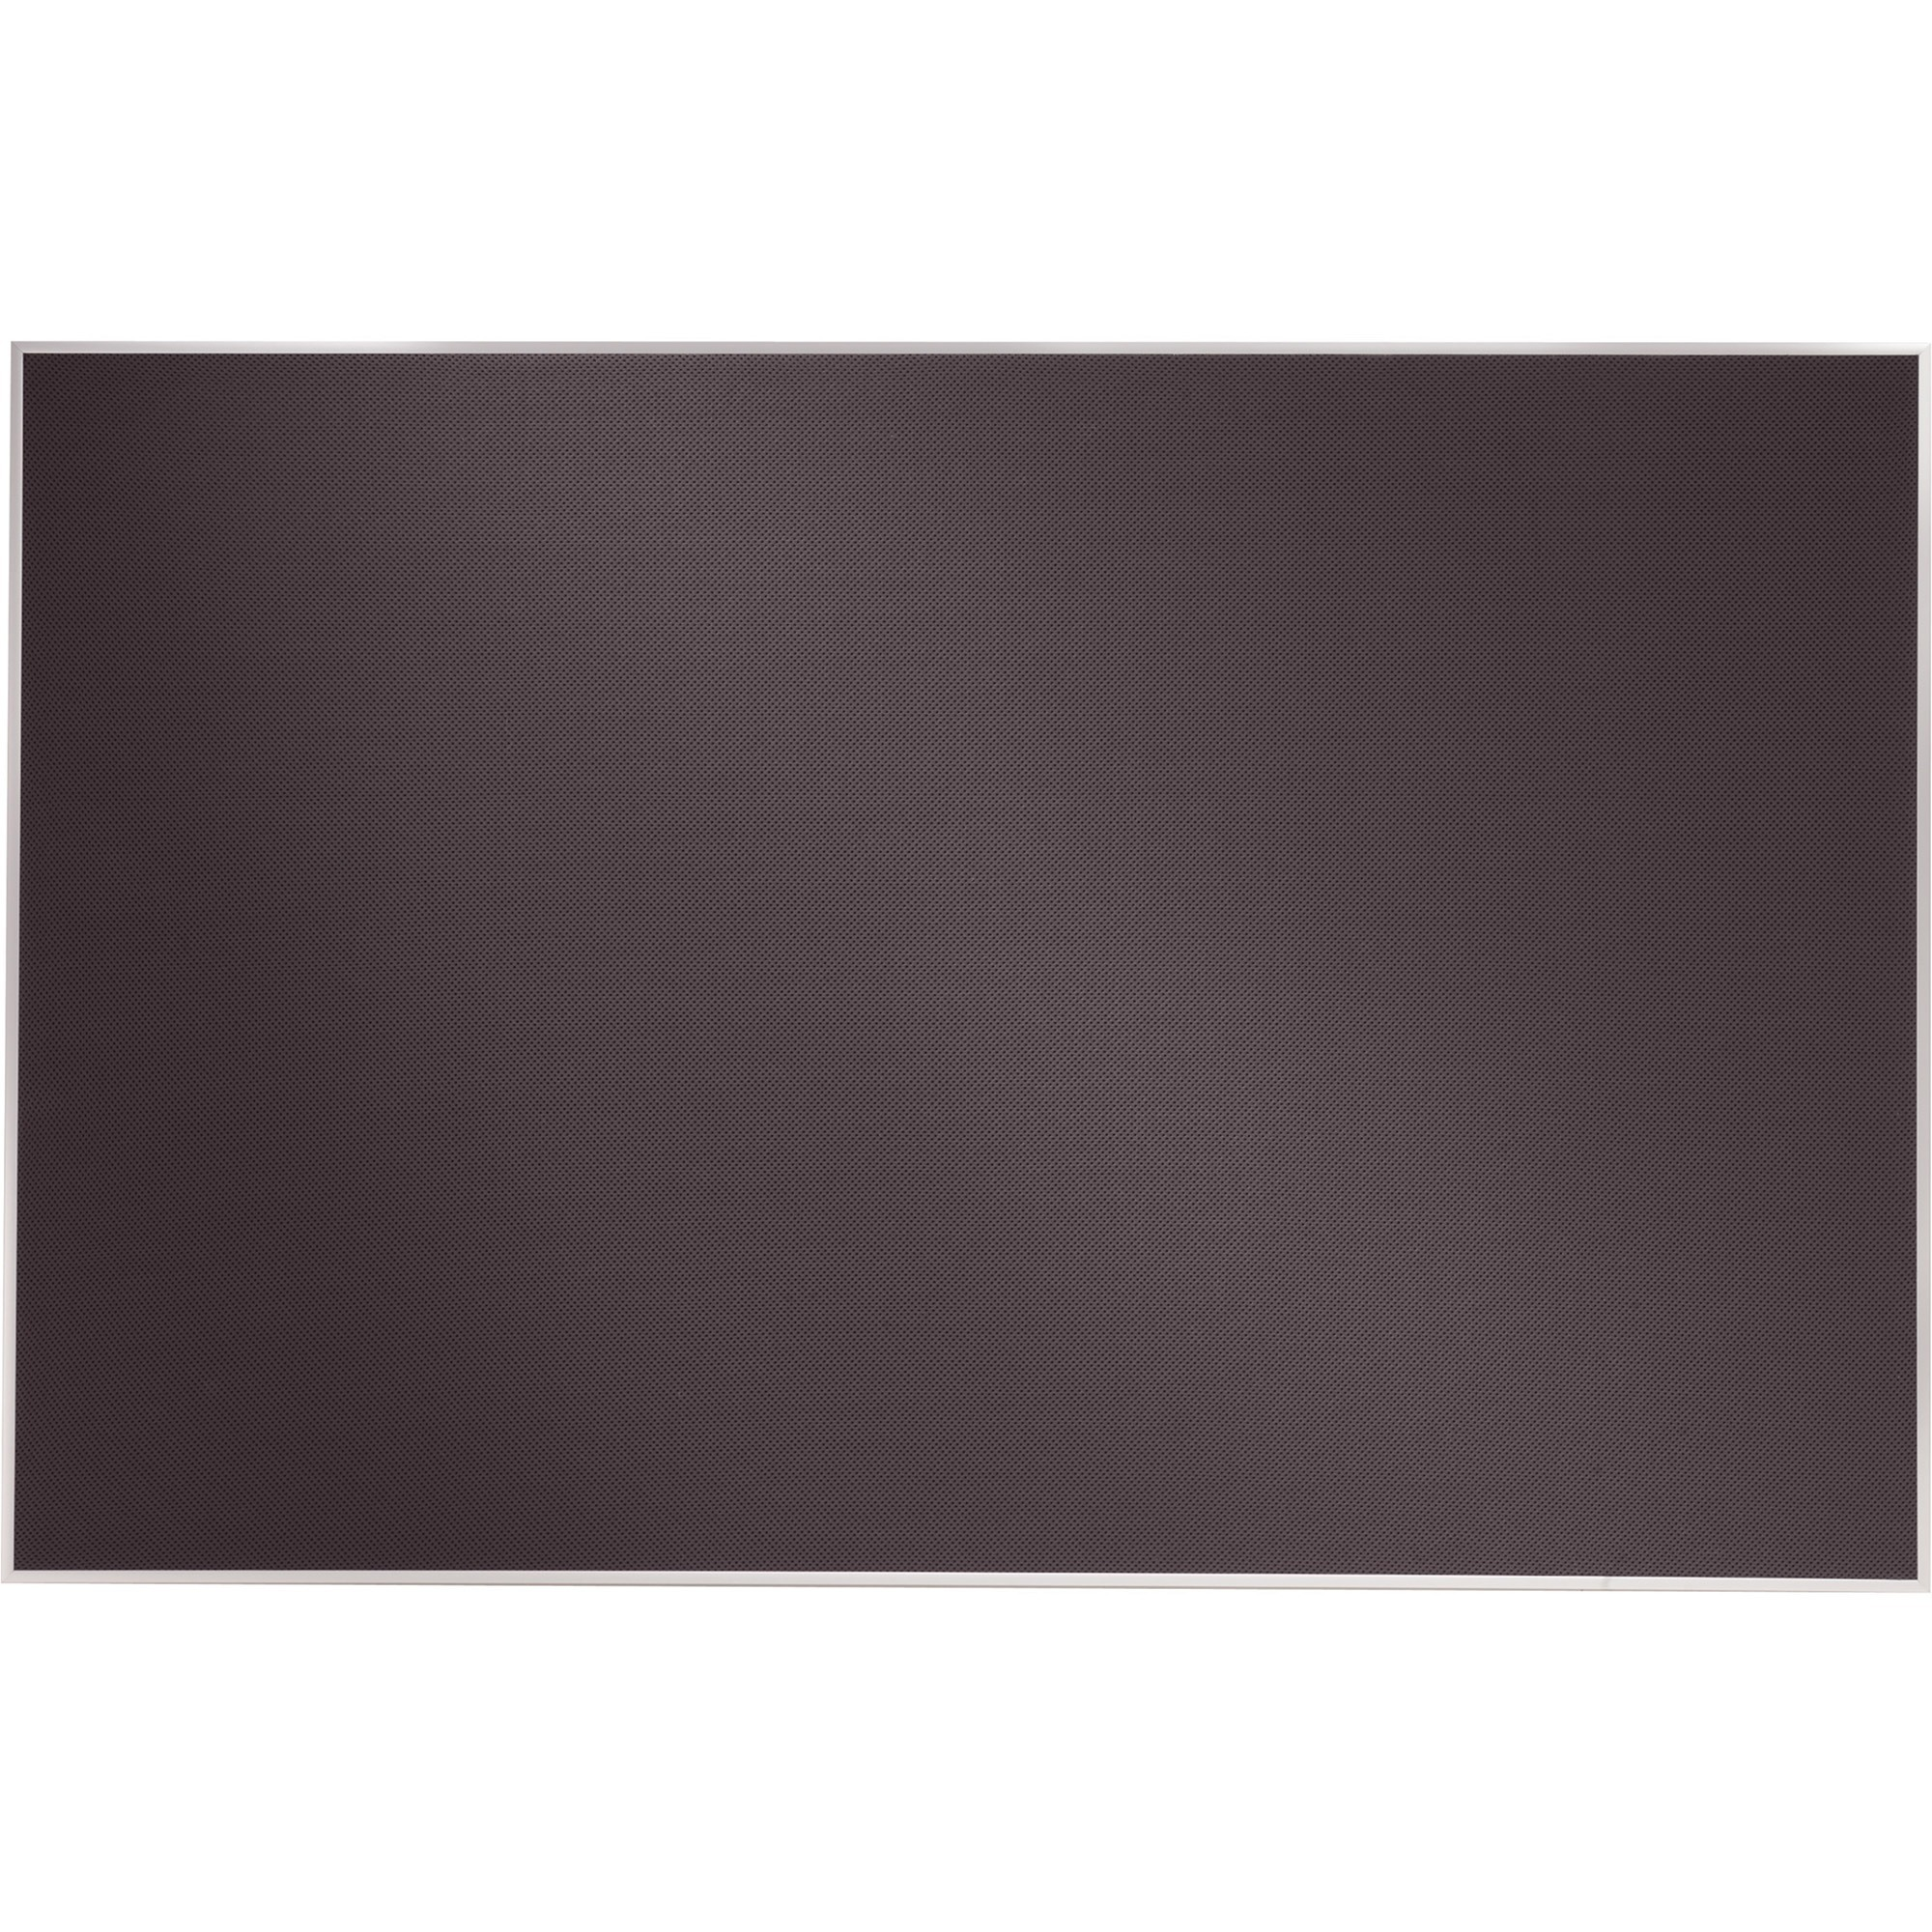 Acco Brands Corporation Quartet Matrix® Gray Bulletin Board, 48 X 31, Fabric, Aluminum Frame - 31 Height X 48 Width - Gray Woven Fabric Surface - Silver Aluminum Frame - 1 / Each